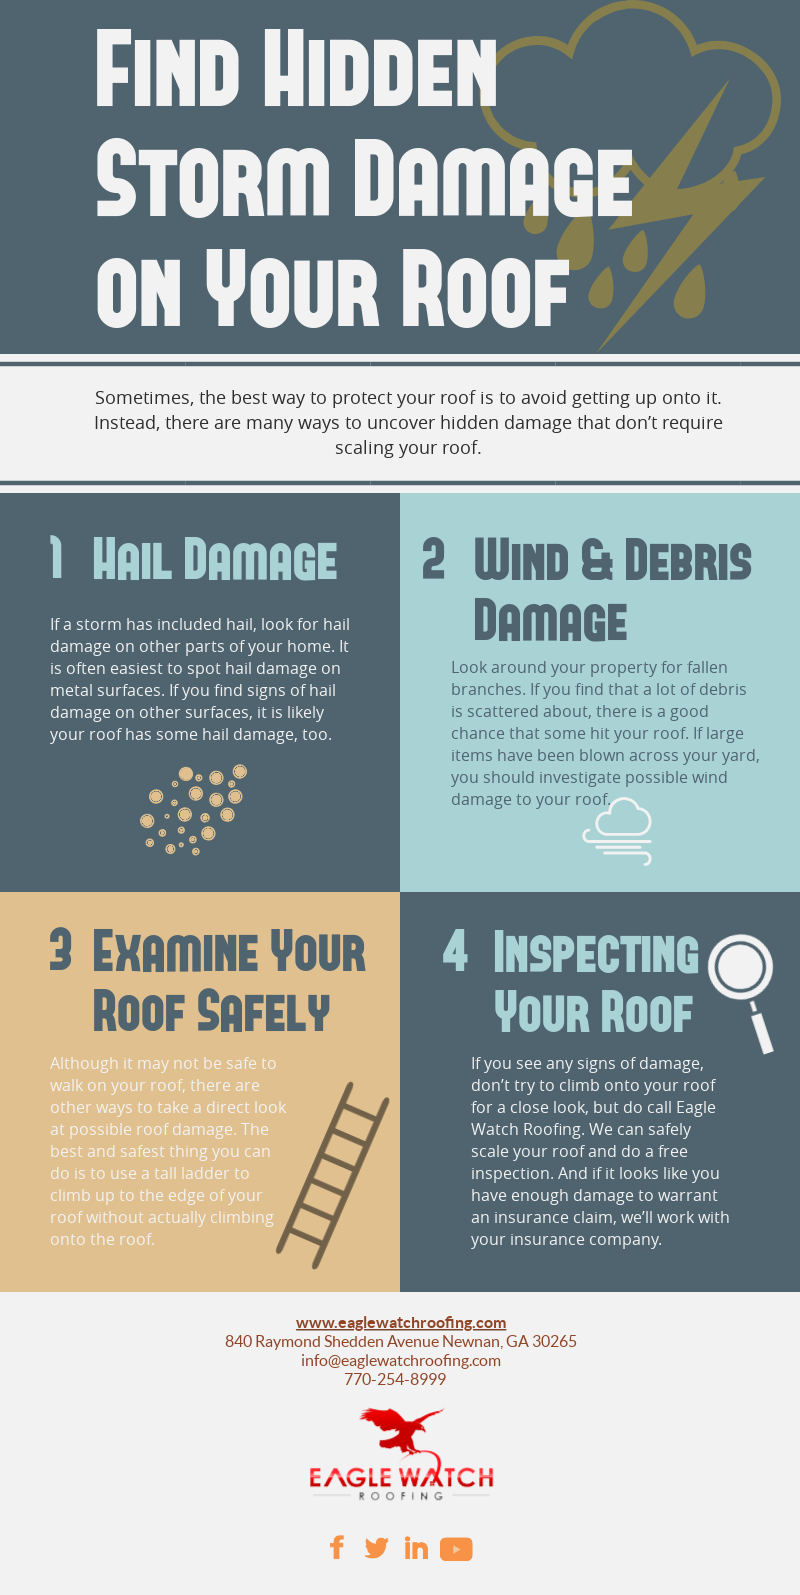 How to Find Hidden Storm Damage on Your Roof [infographic]